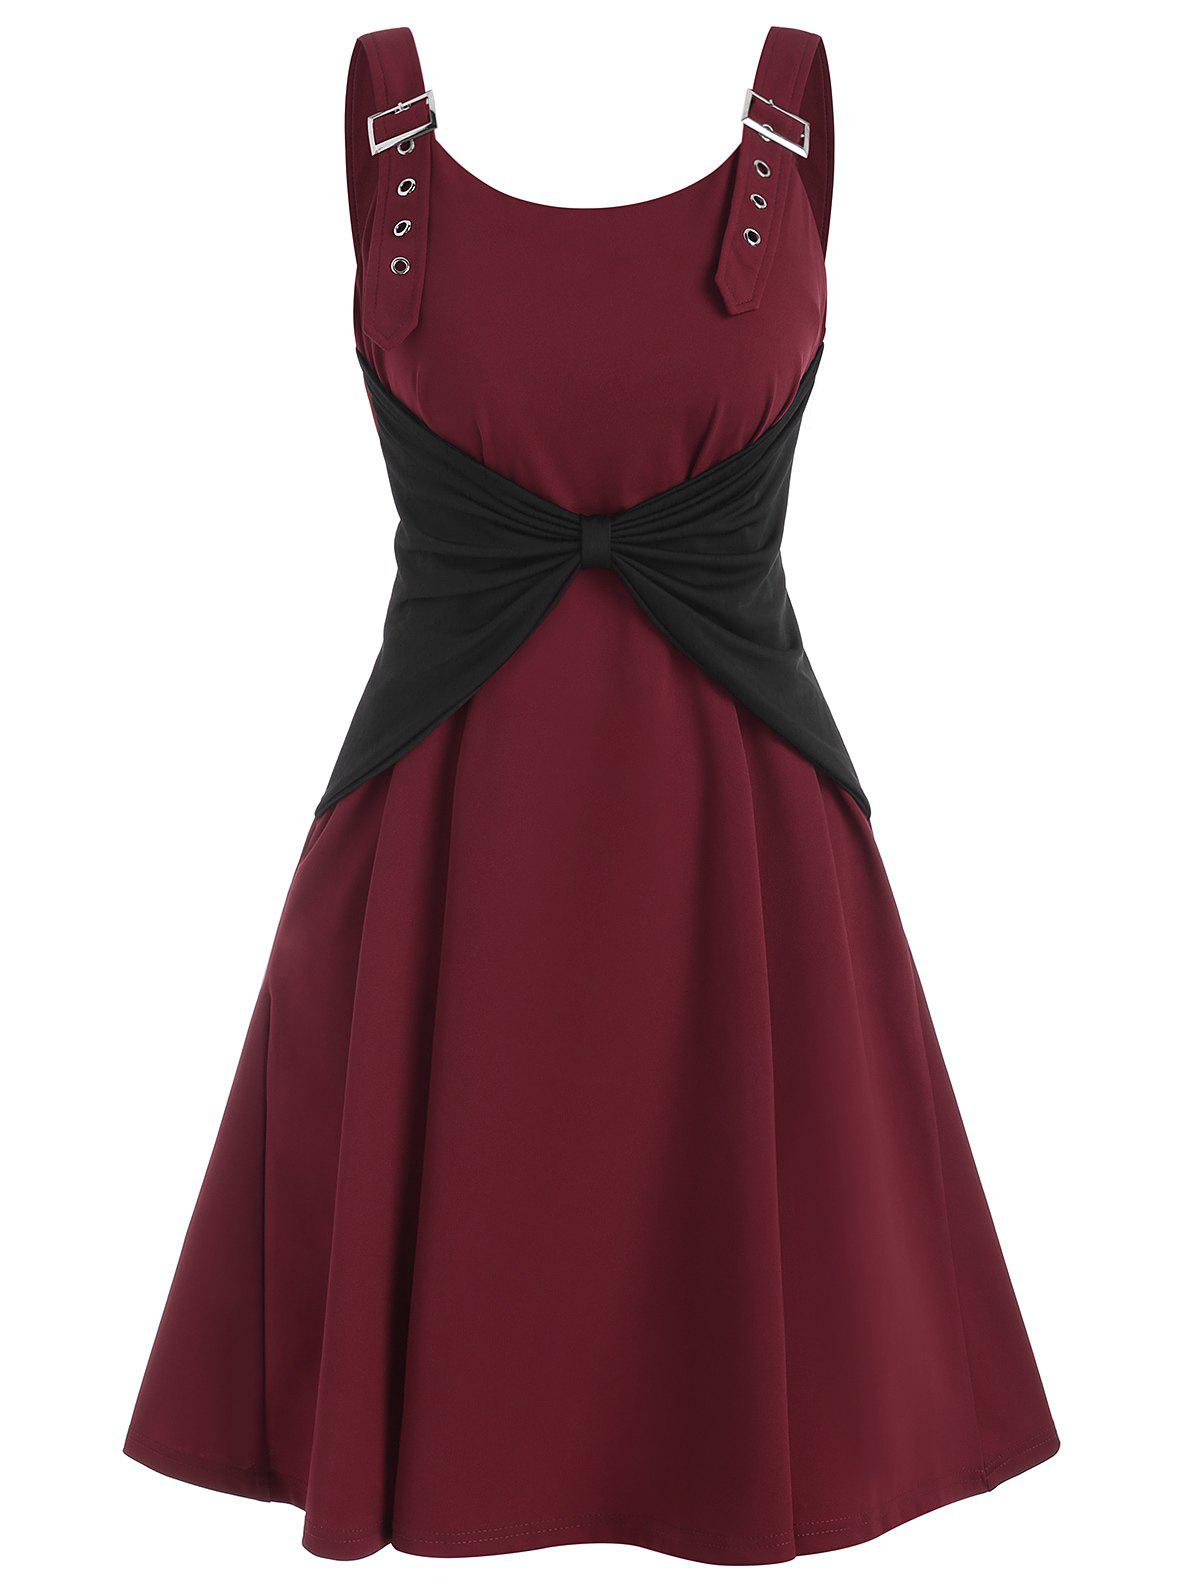 Buckle Bowknot A Line Dress - DEEP RED S